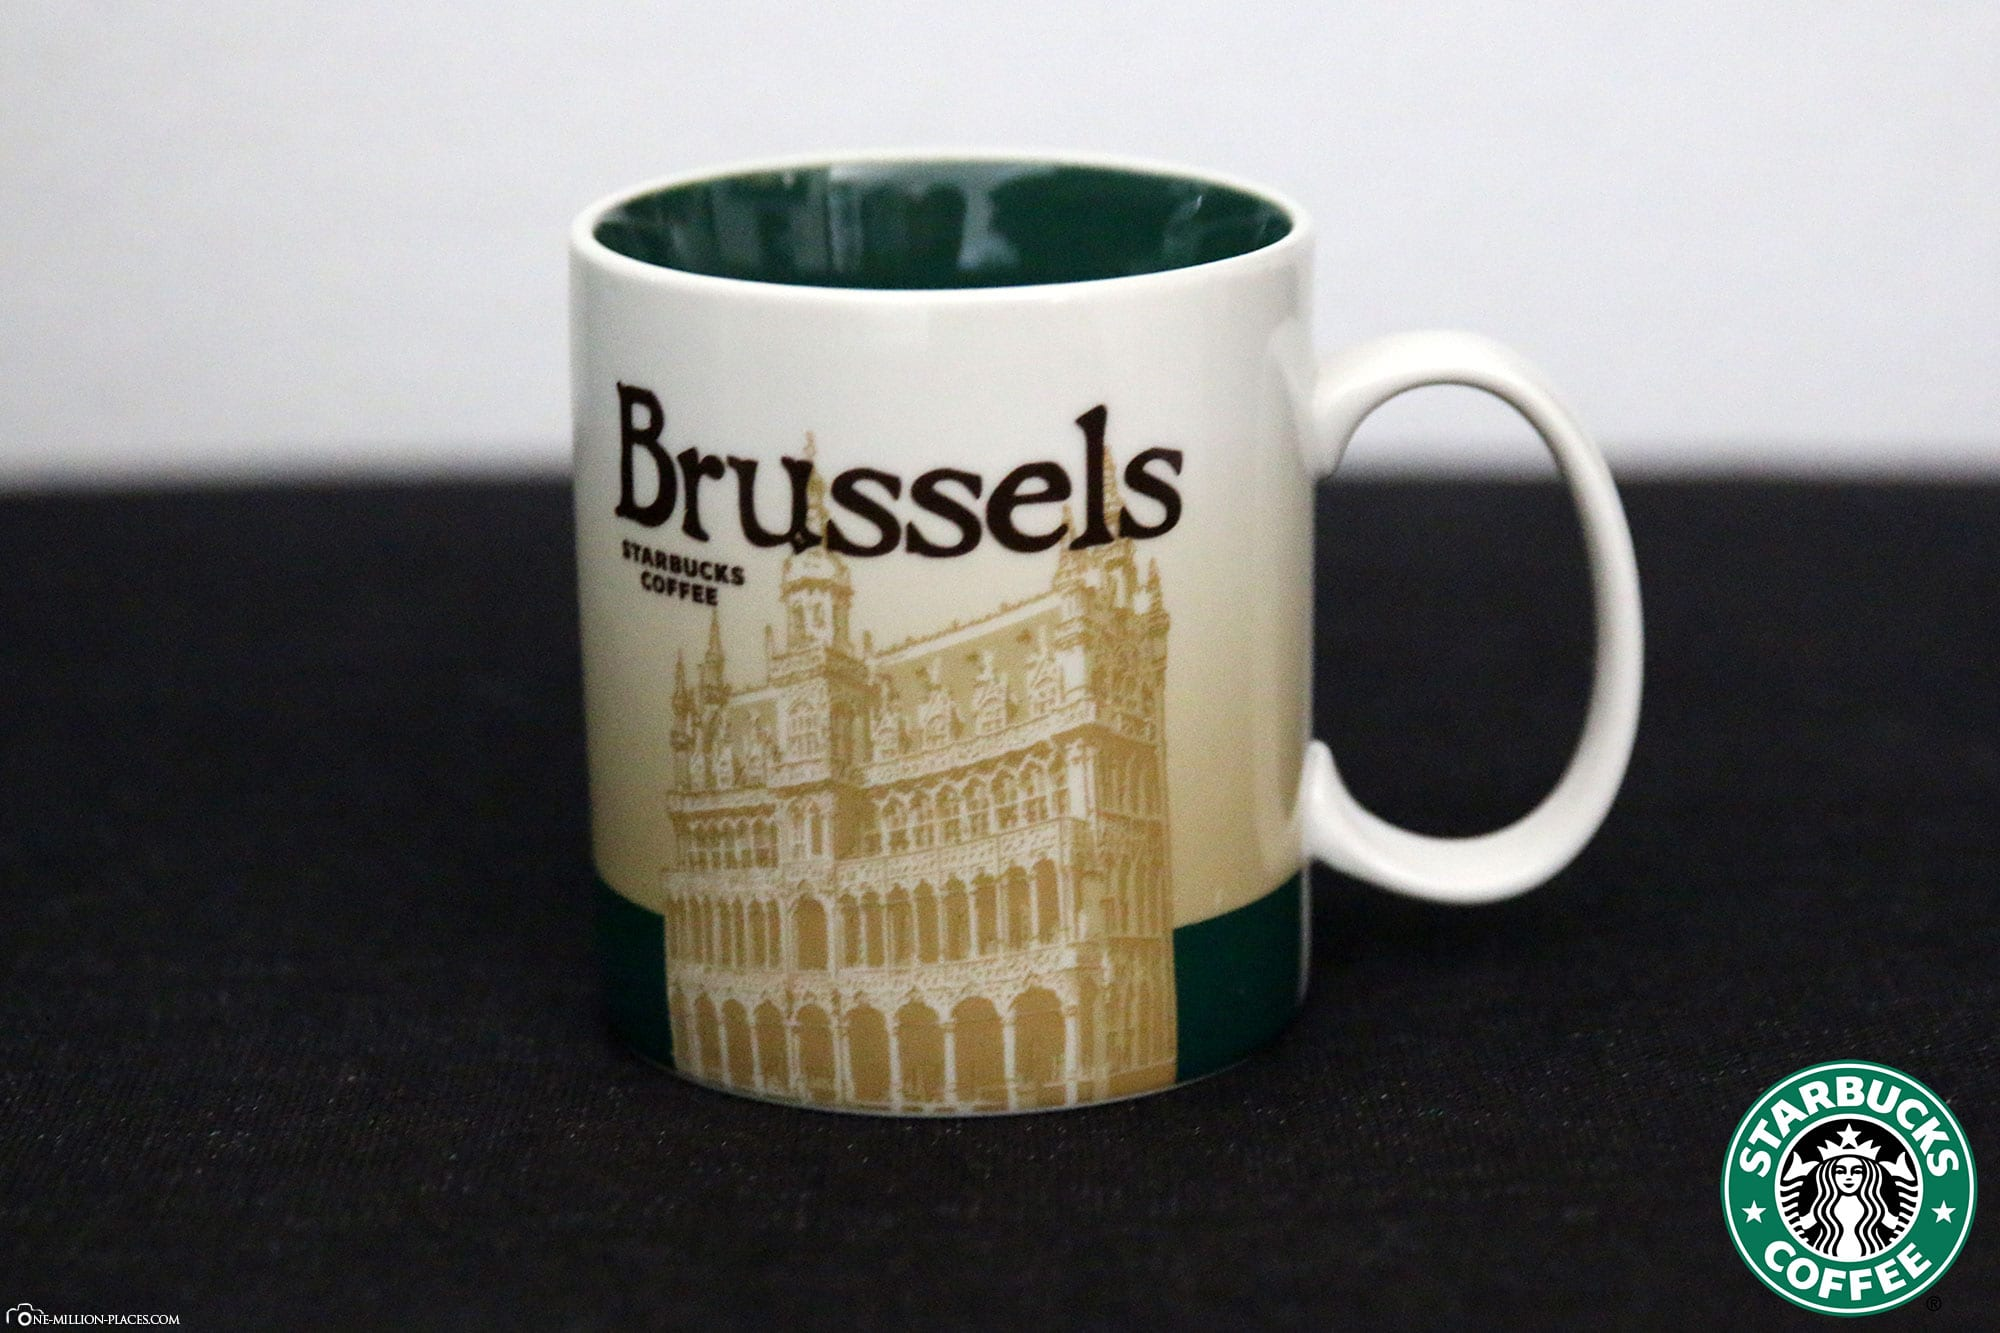 Brussels, Starbucks Cup, Global Icon Series, City Mugs, Collection, Belgium, Travelreport